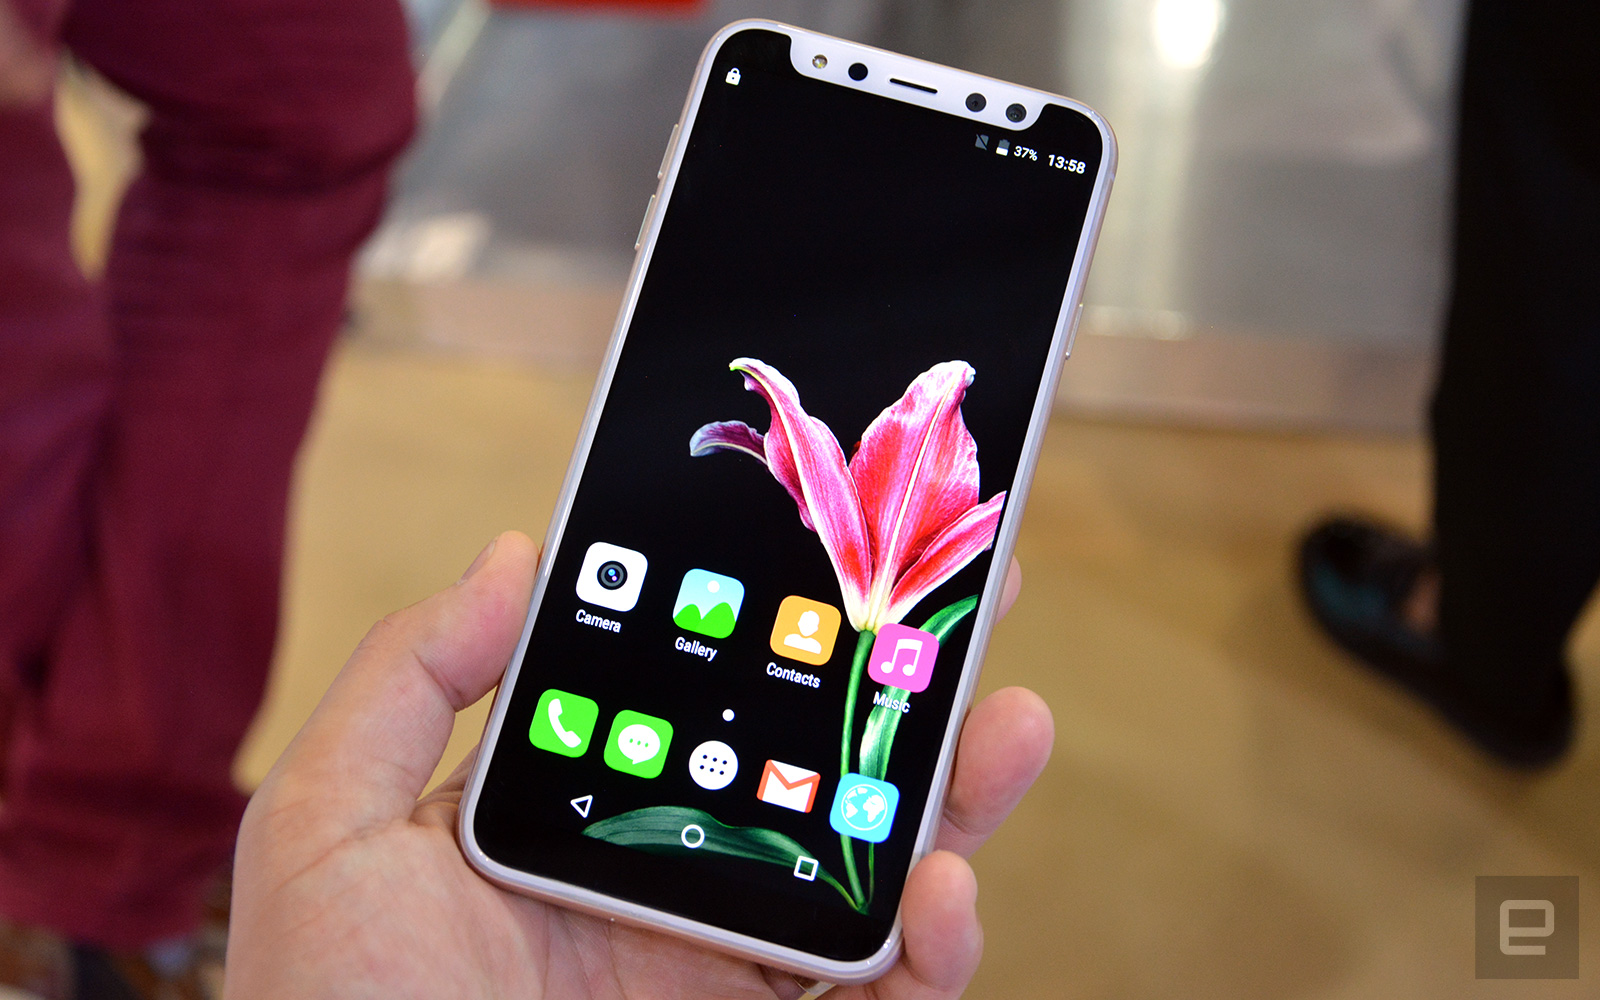 Un smartphone iPhone X fals are o crestatura falsa, evident